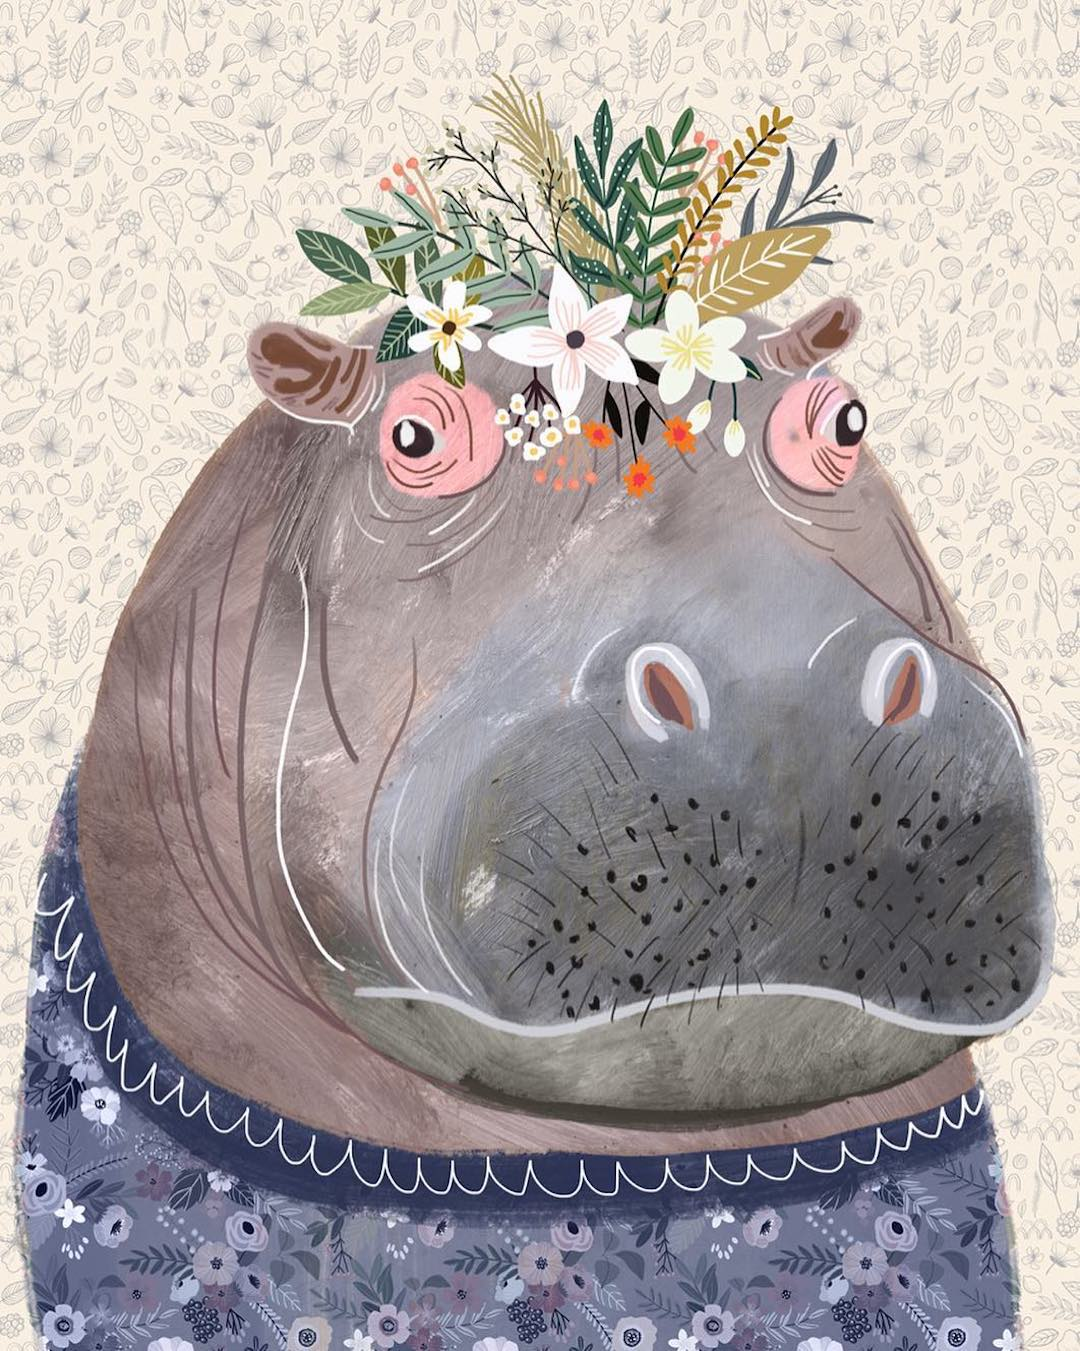 delightful illustrations of animals wearing flower crowns